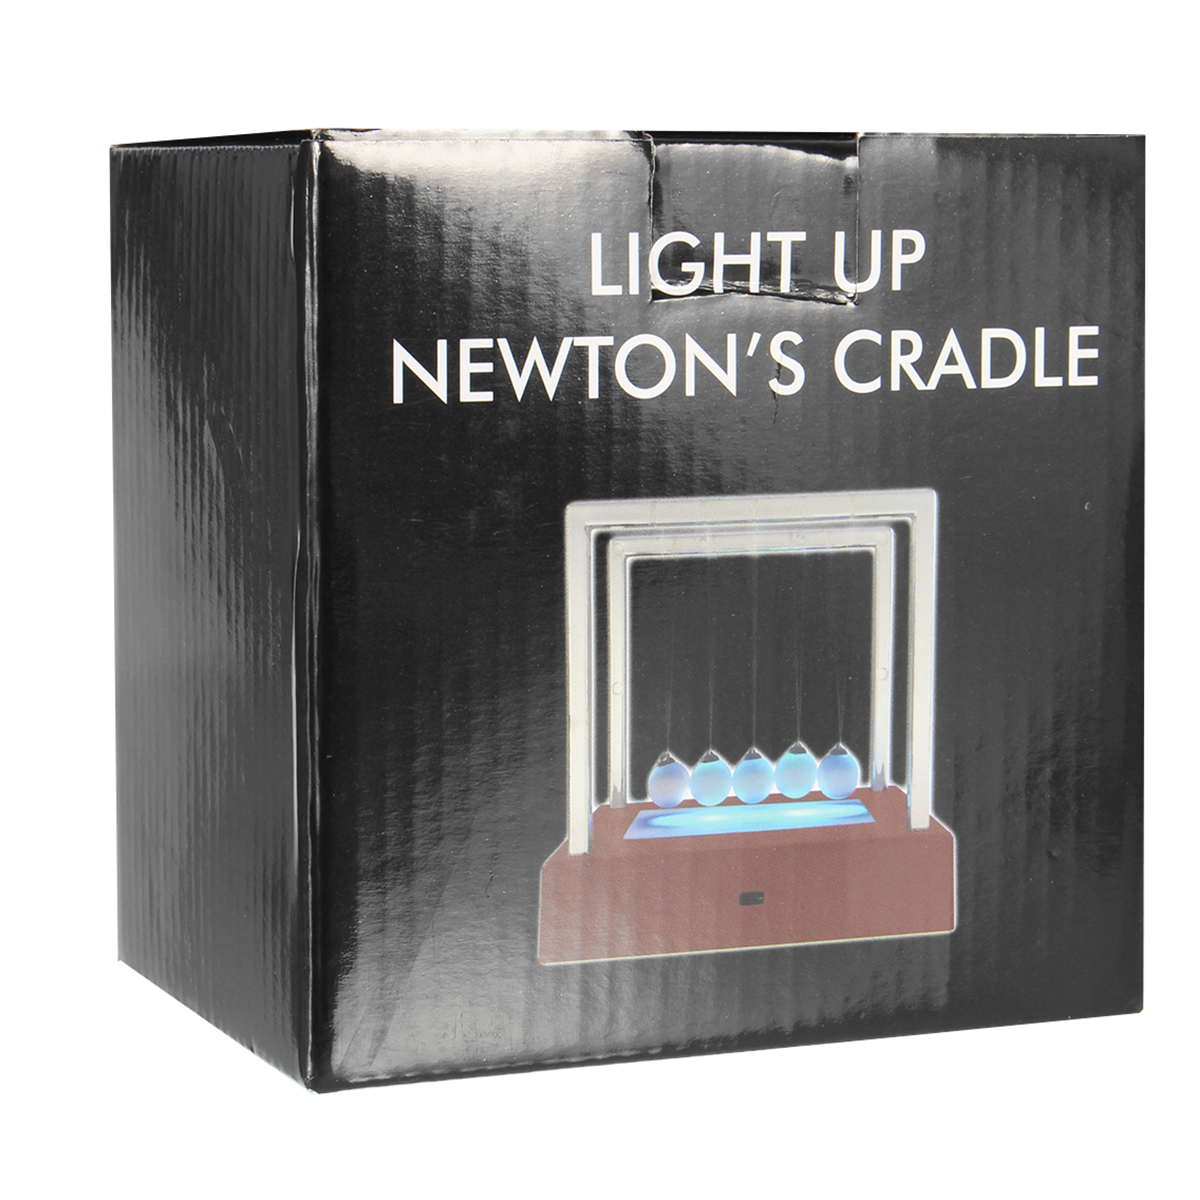 Newtons Cradle Balance Ball with Light Office Science Educational Desk Decor Decoration